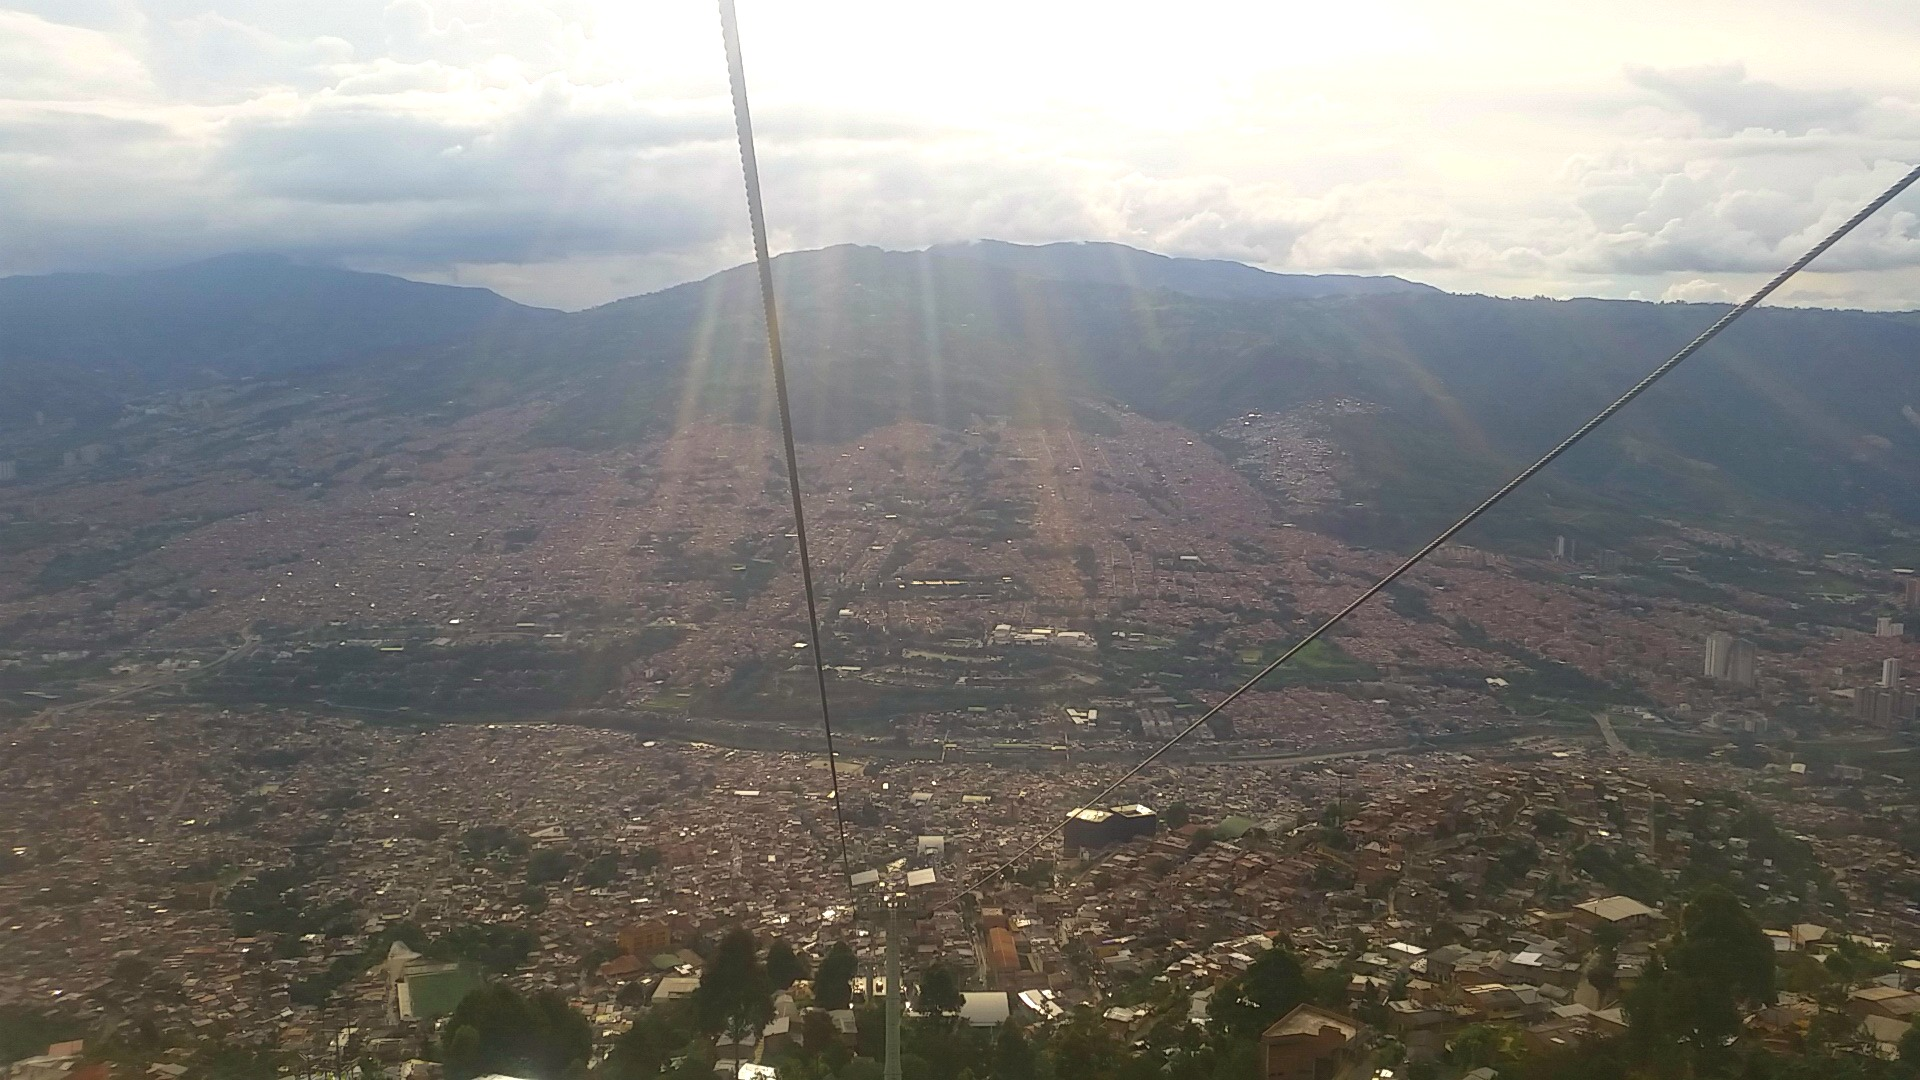 Medellin metro cable car